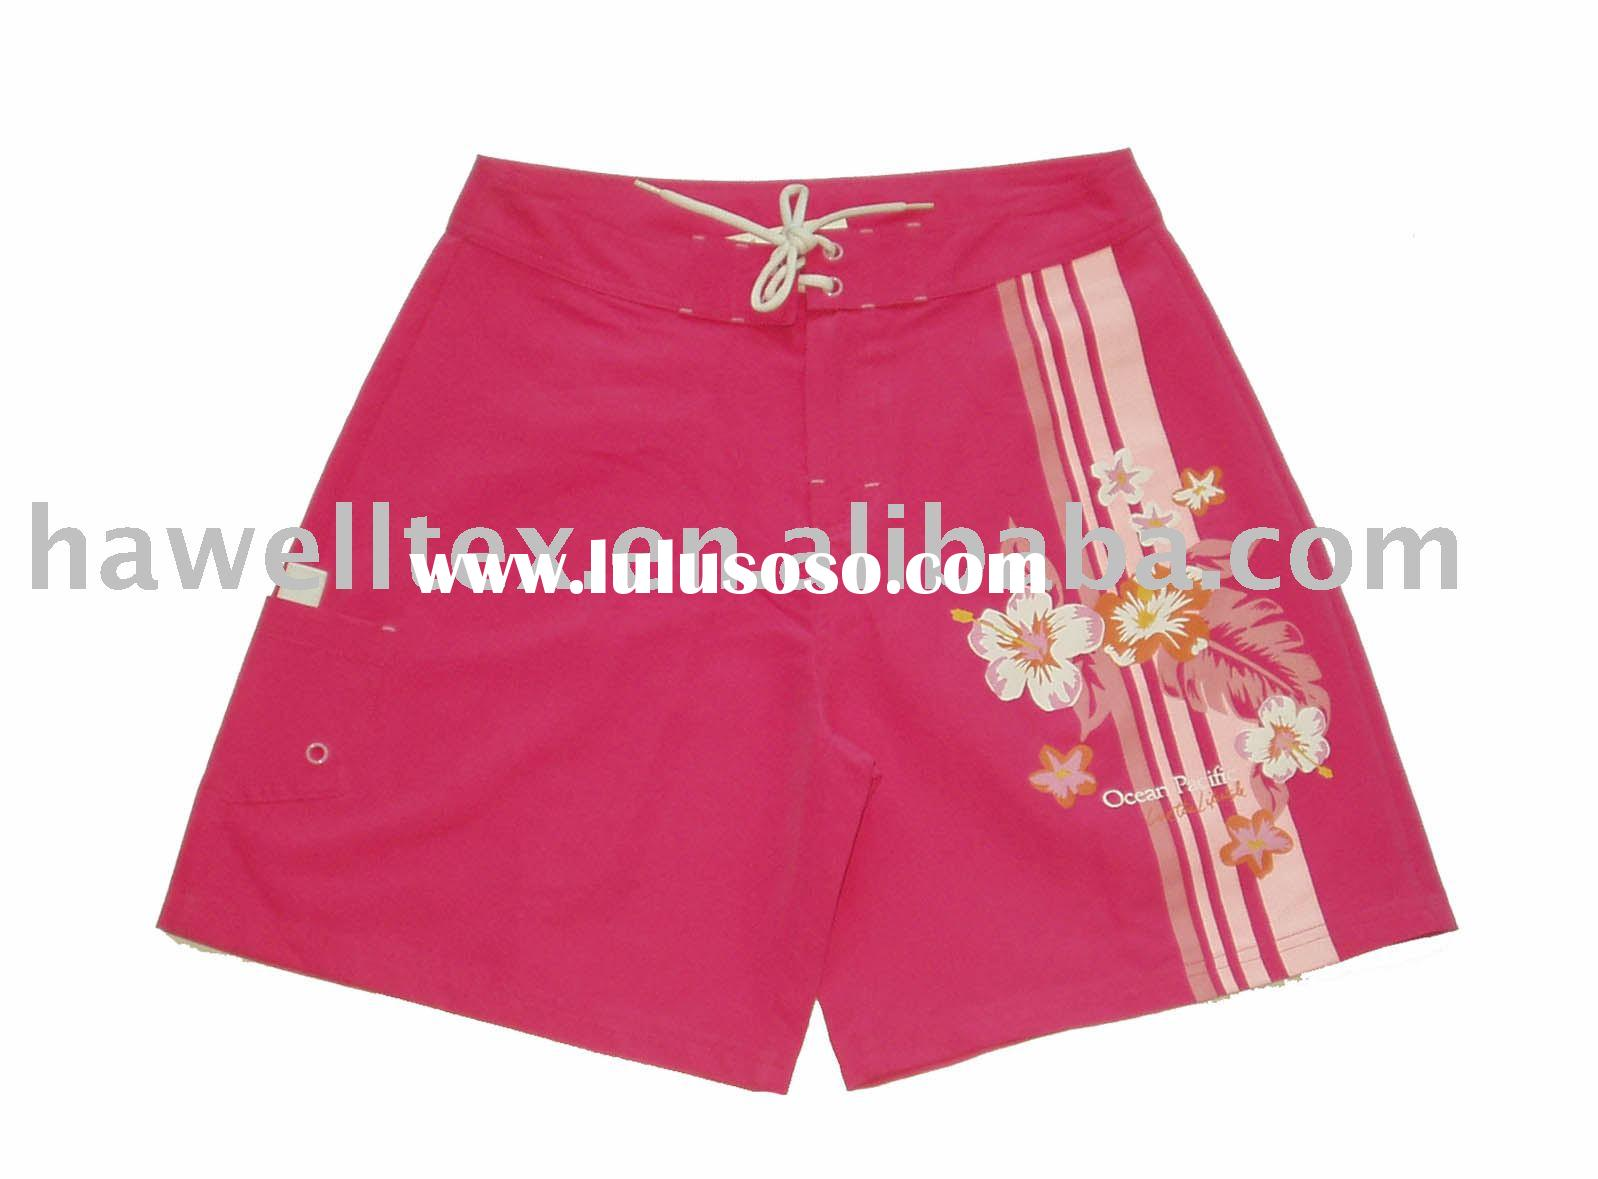 Ladies board shorts.(beachwear,swimming shorts)